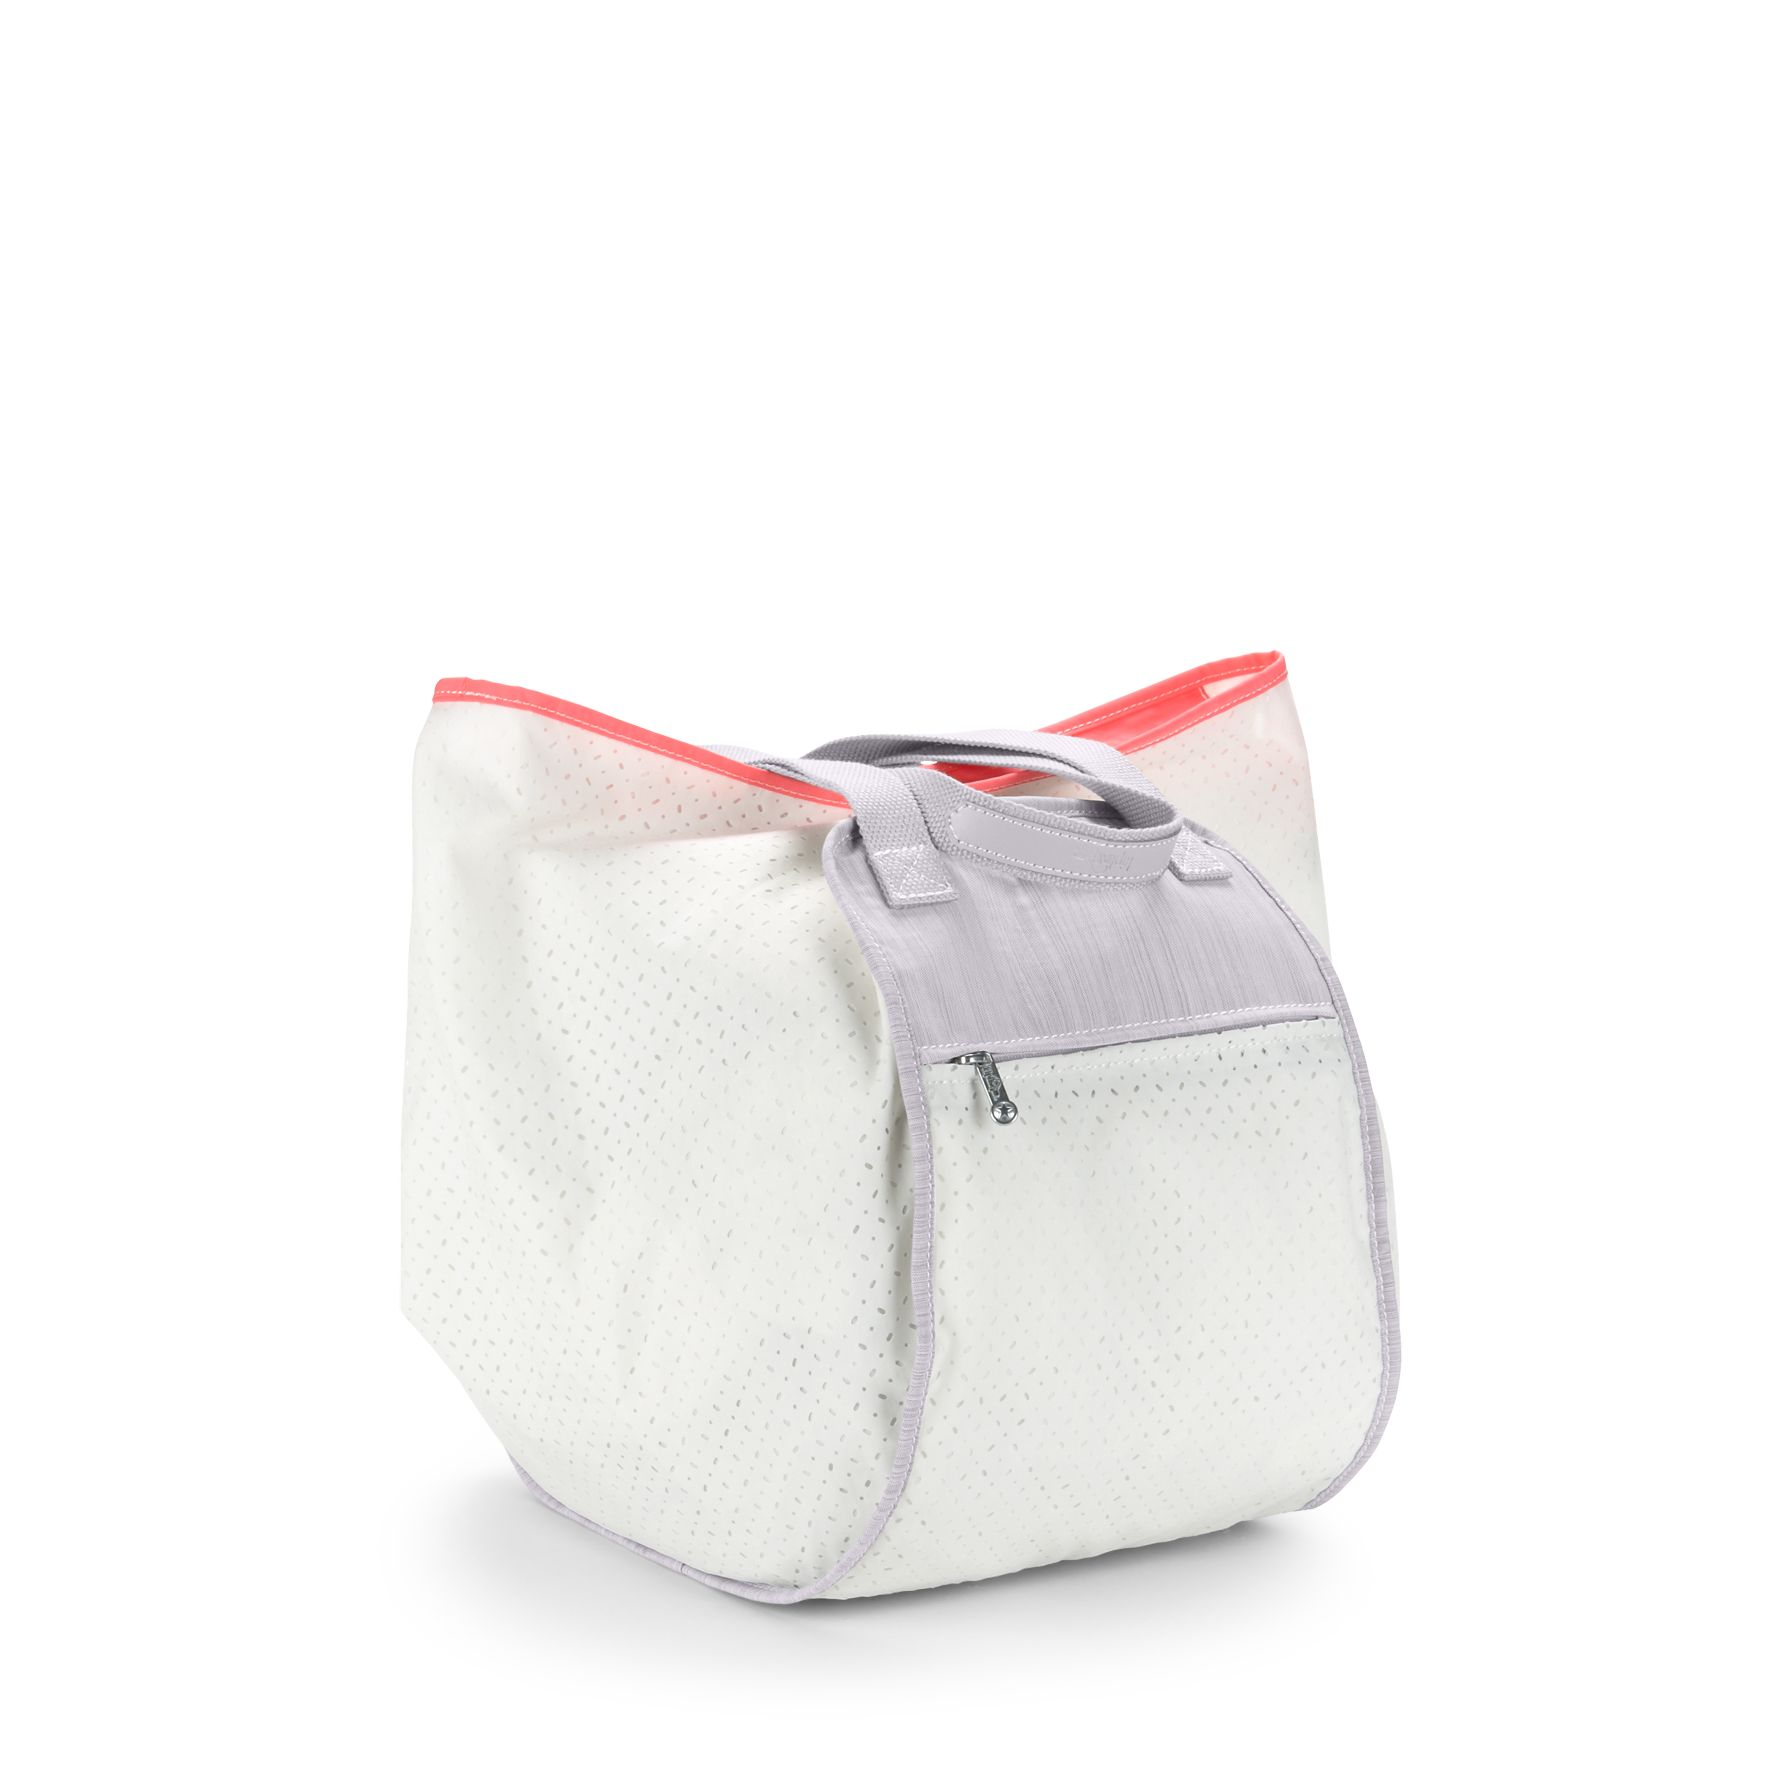 Aqualicious medium shoulder bag